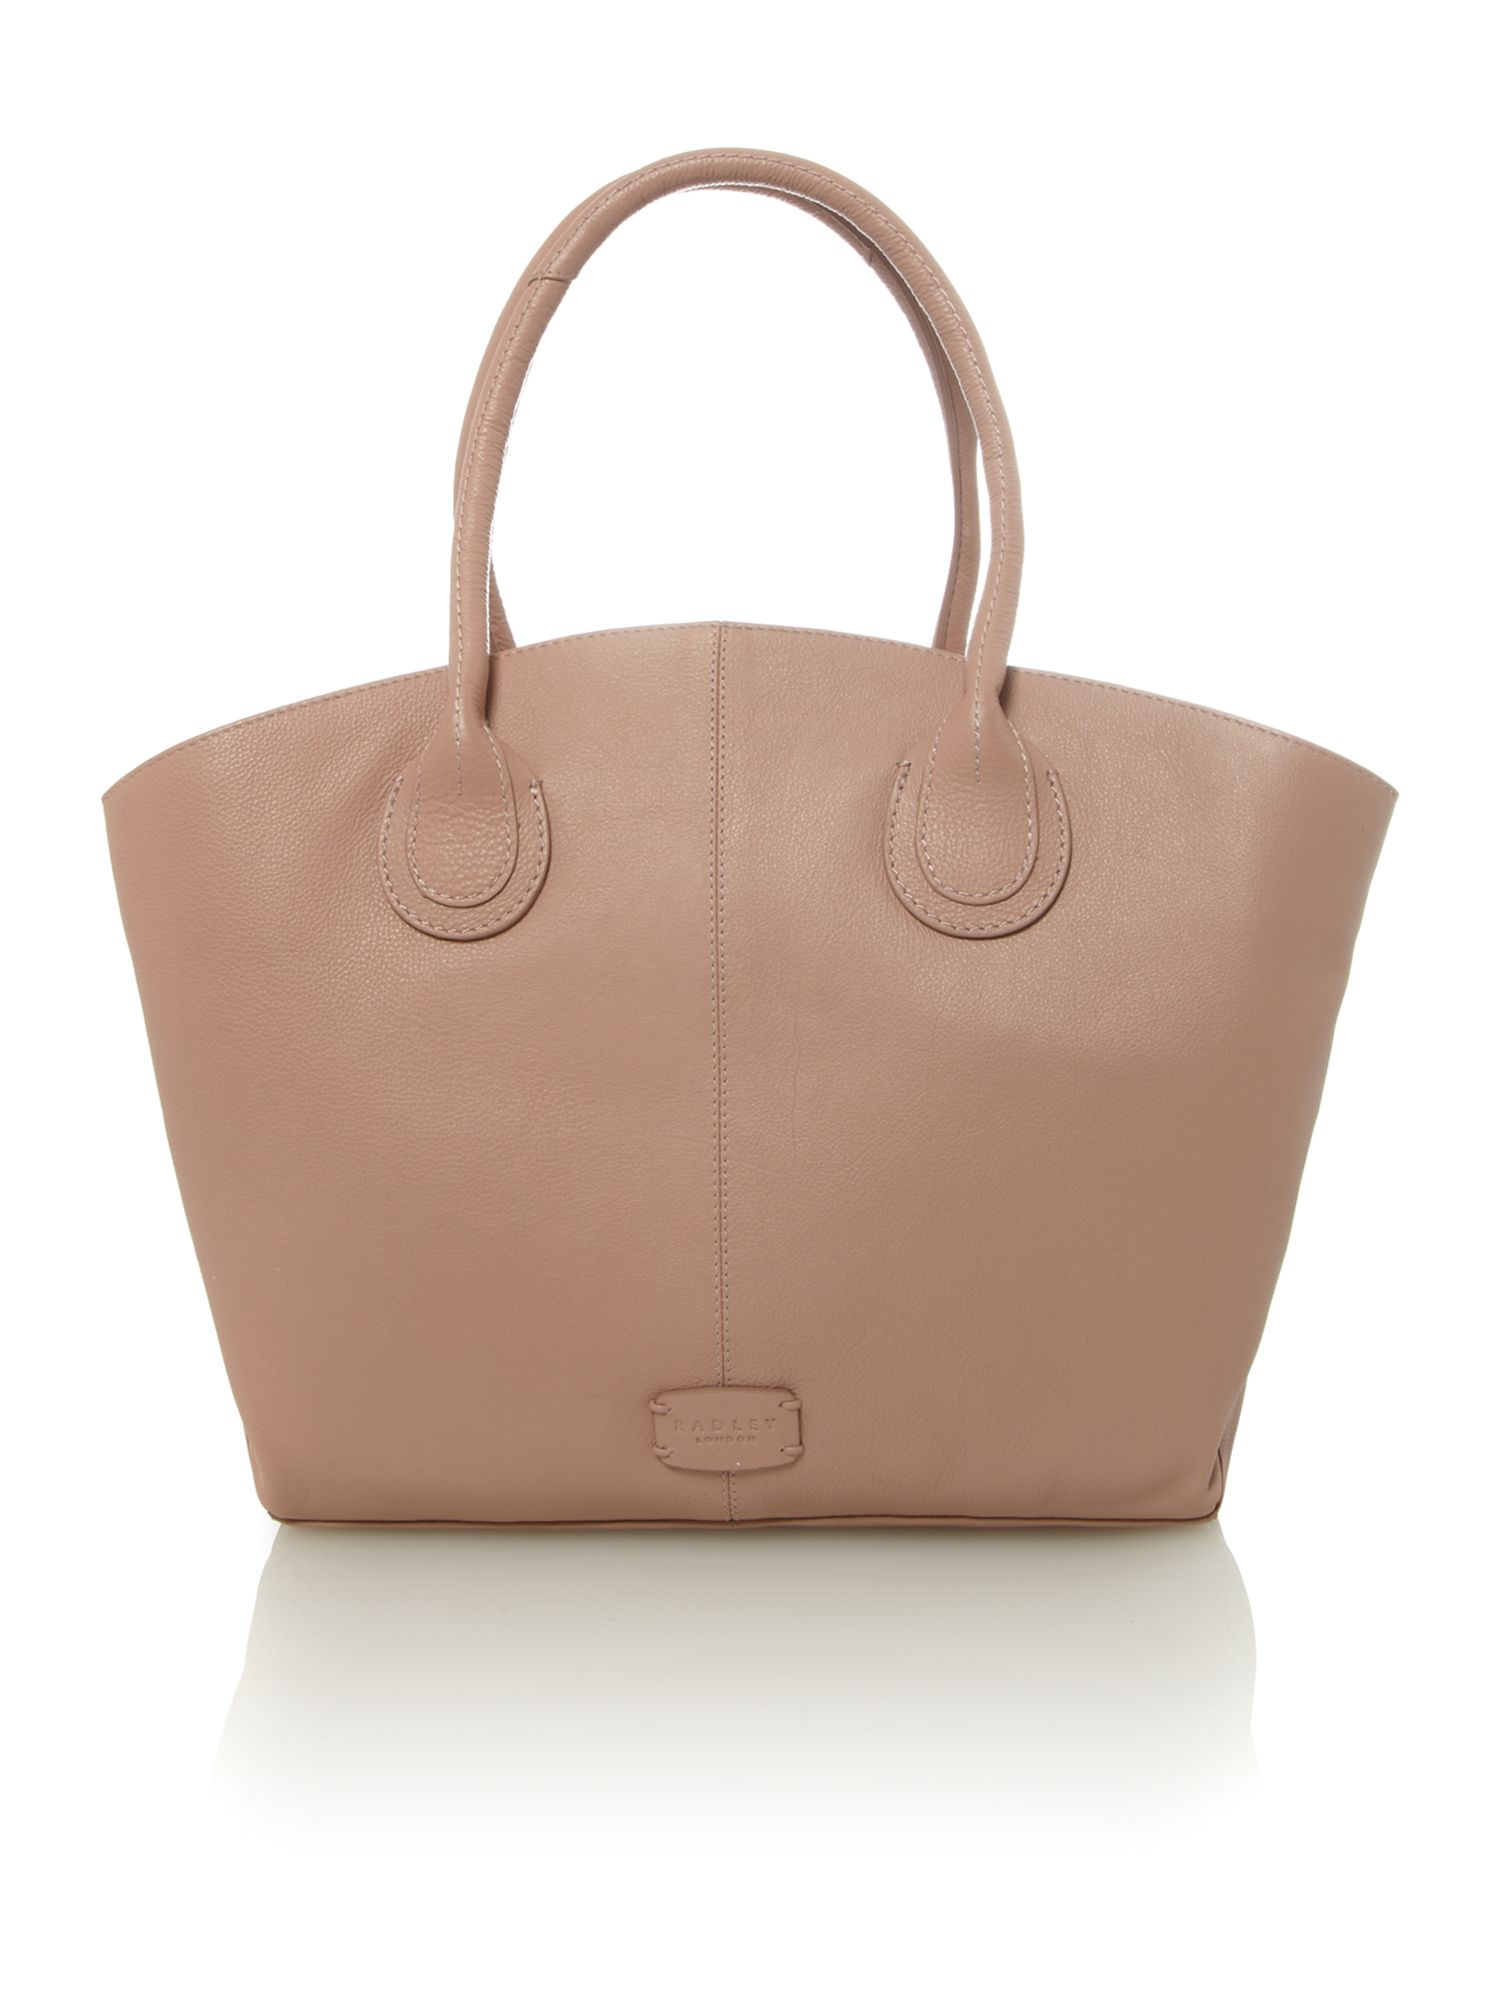 Overton pale pink large tote bag